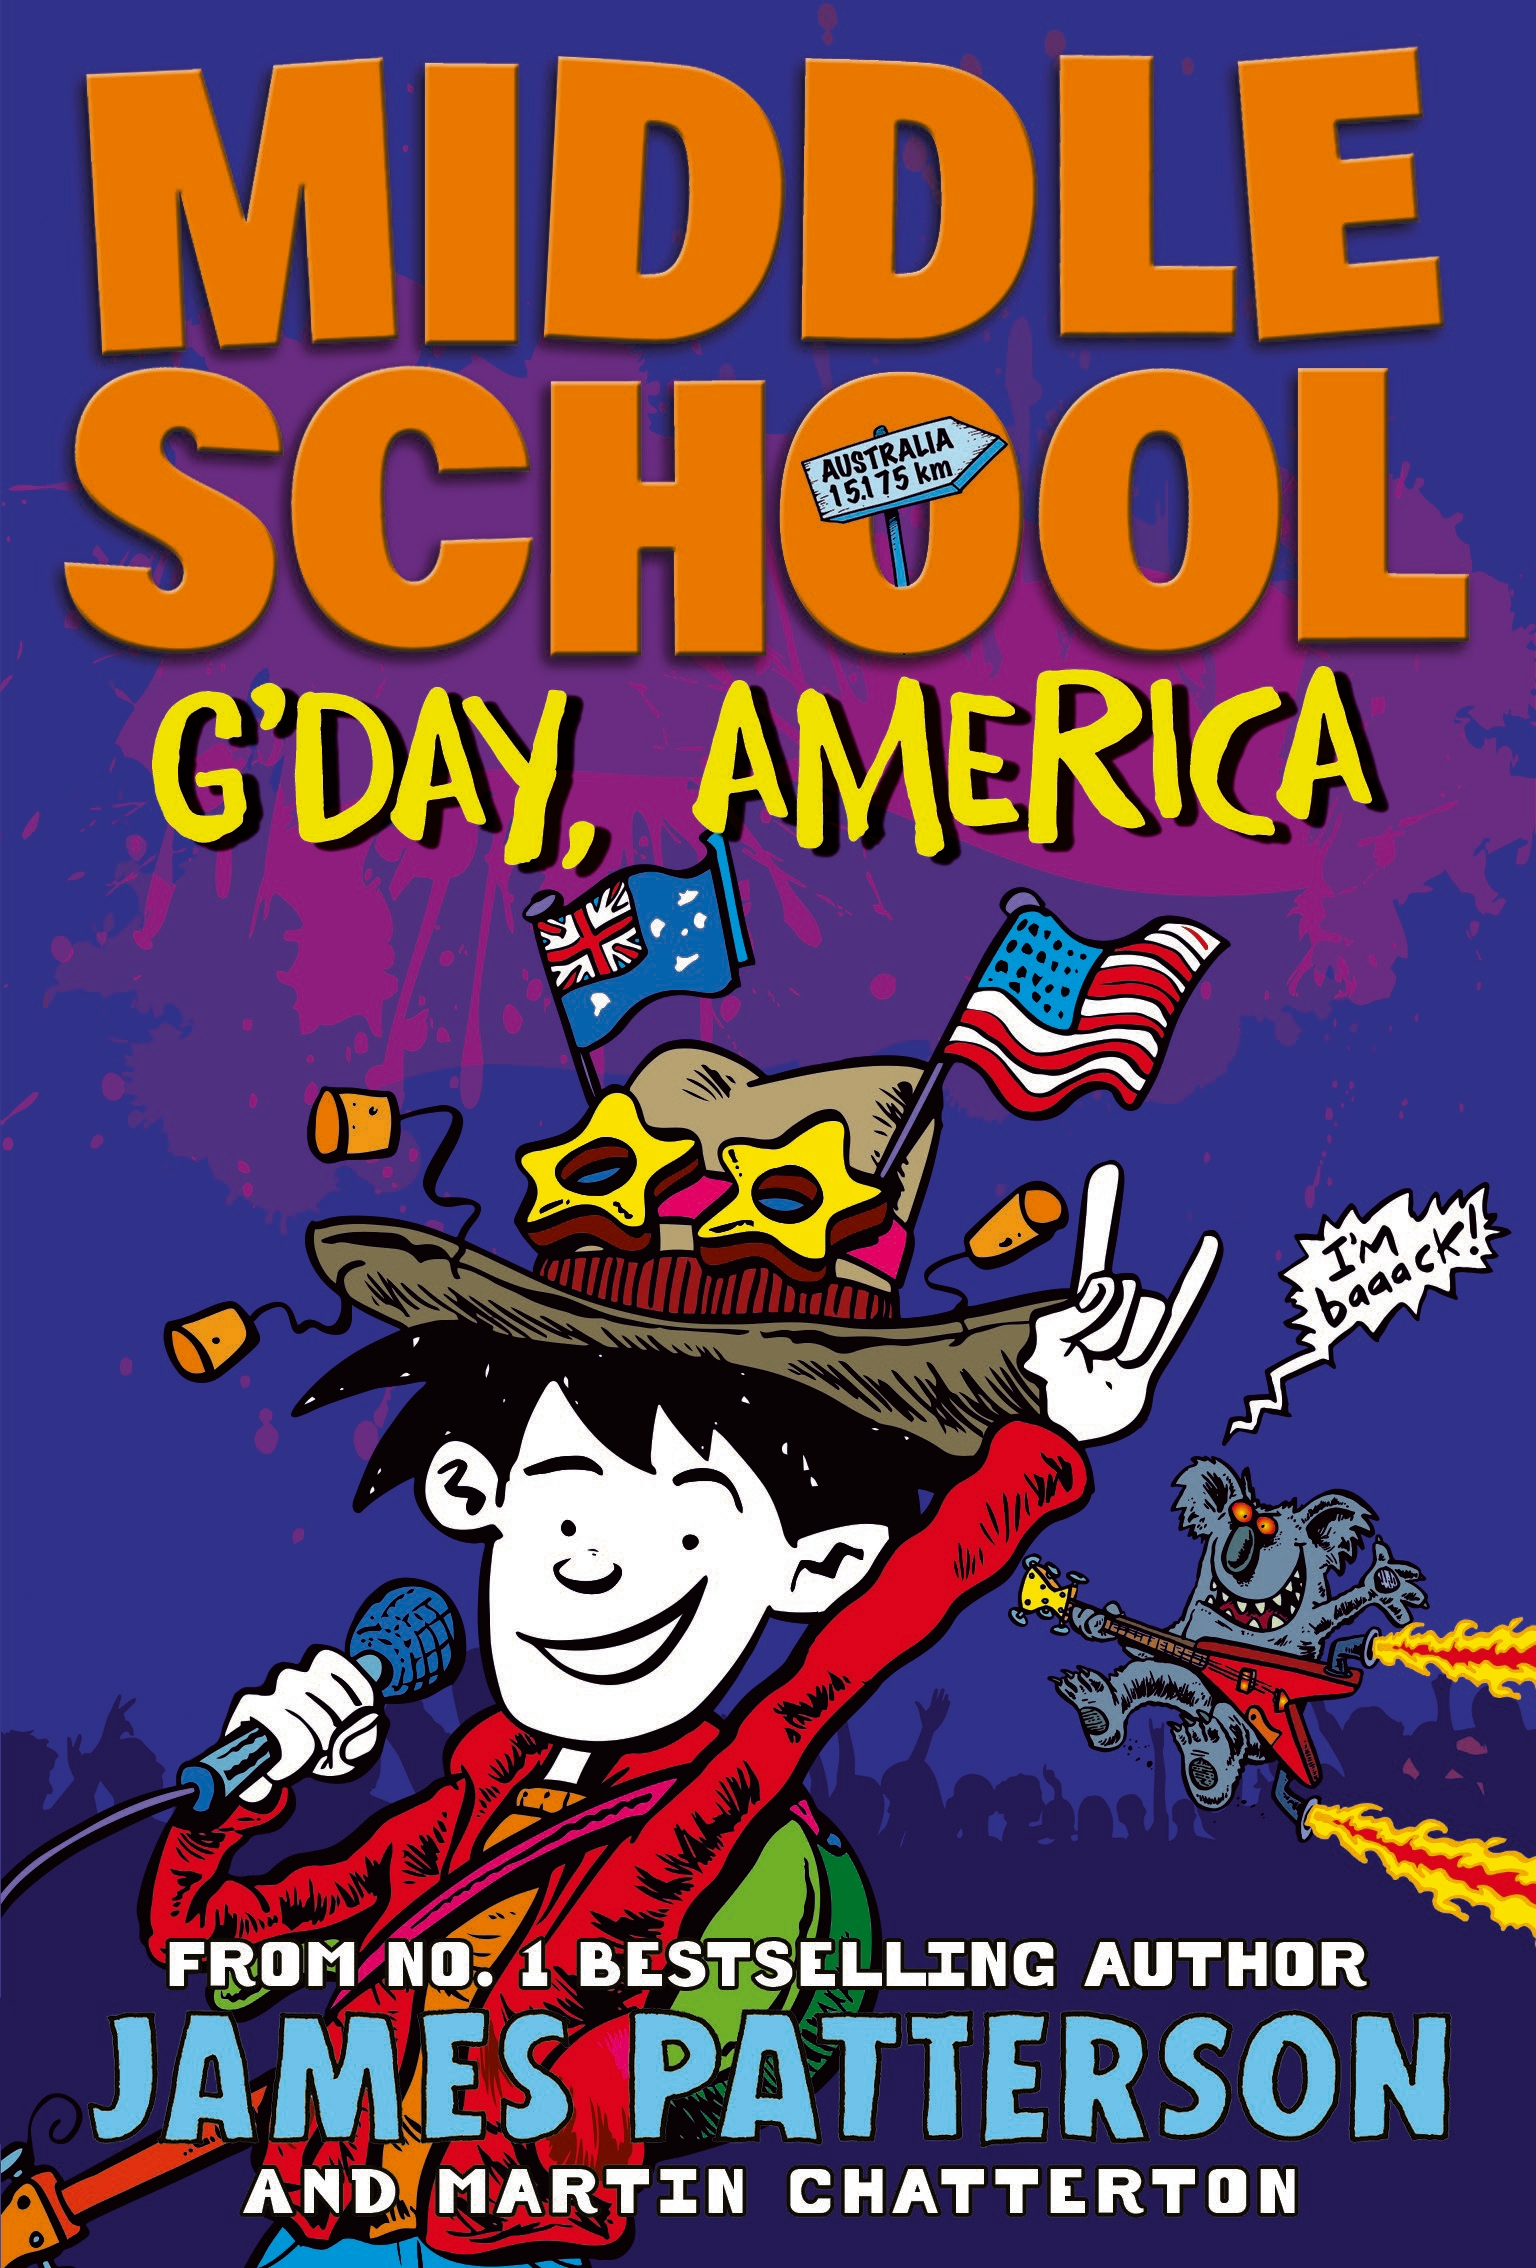 Middle School Gday America By James Patterson Penguin Books